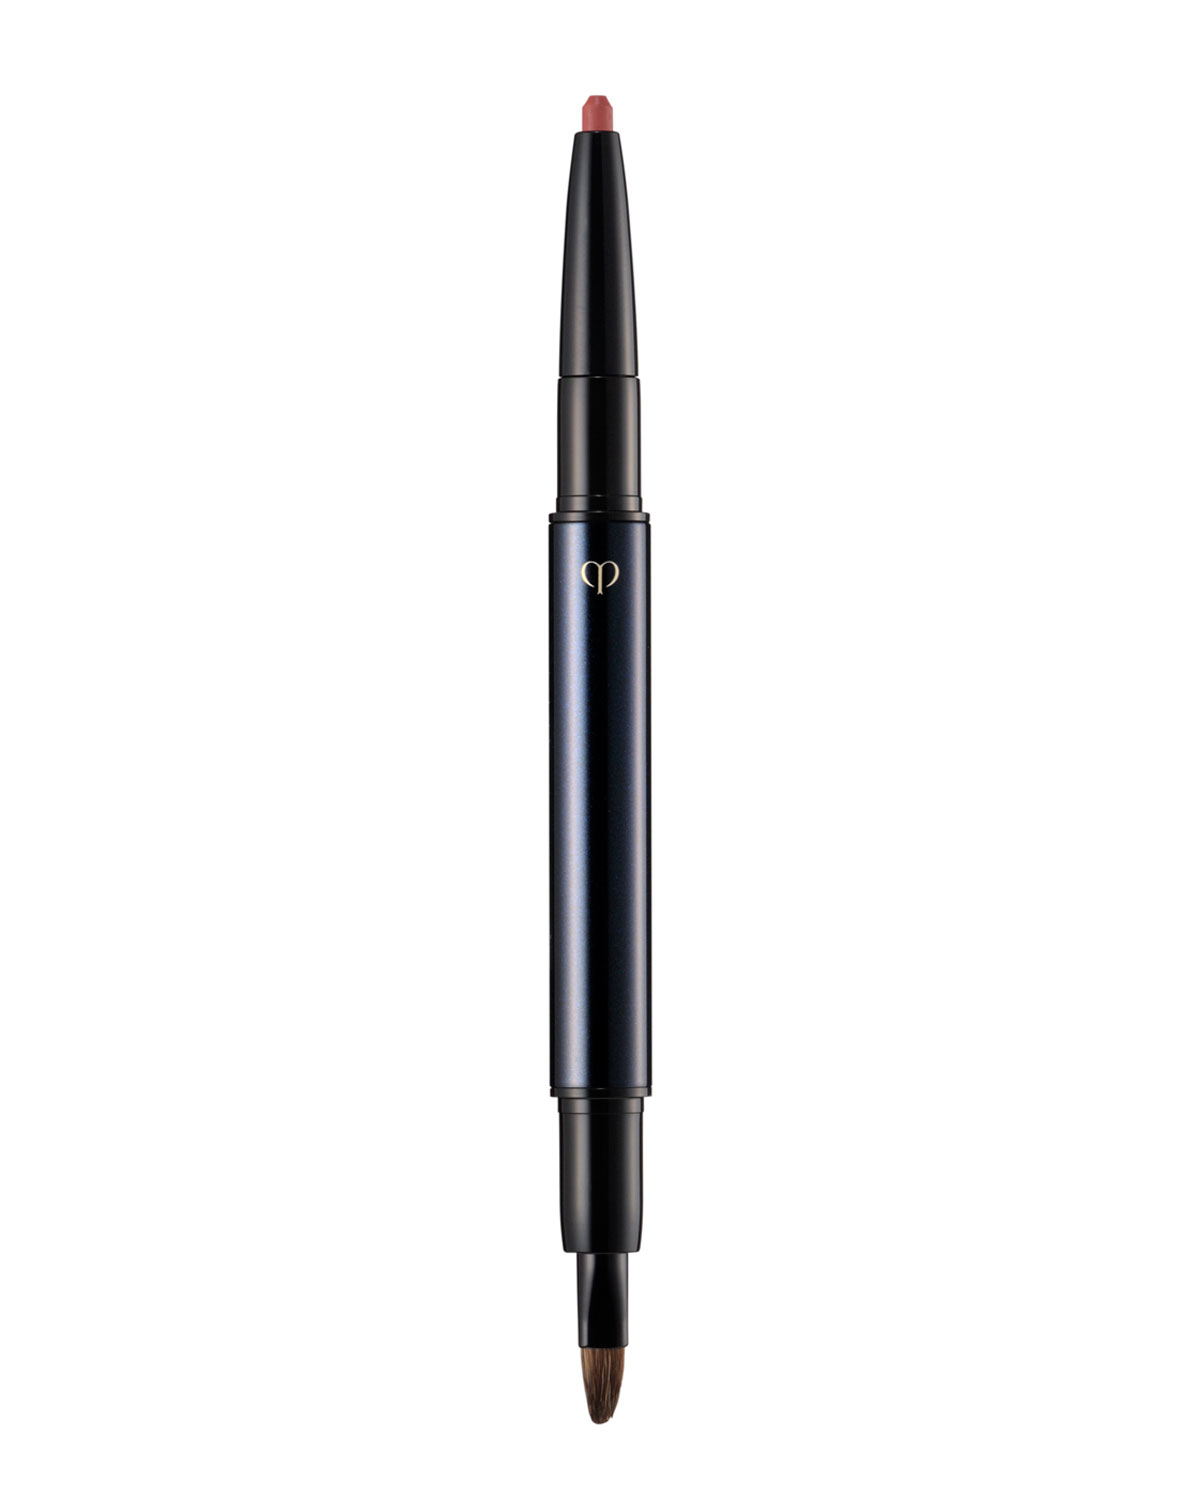 CLE DE PEAU Cle De Peau Beaute Lip Liner Pencil in 205 Brown Red